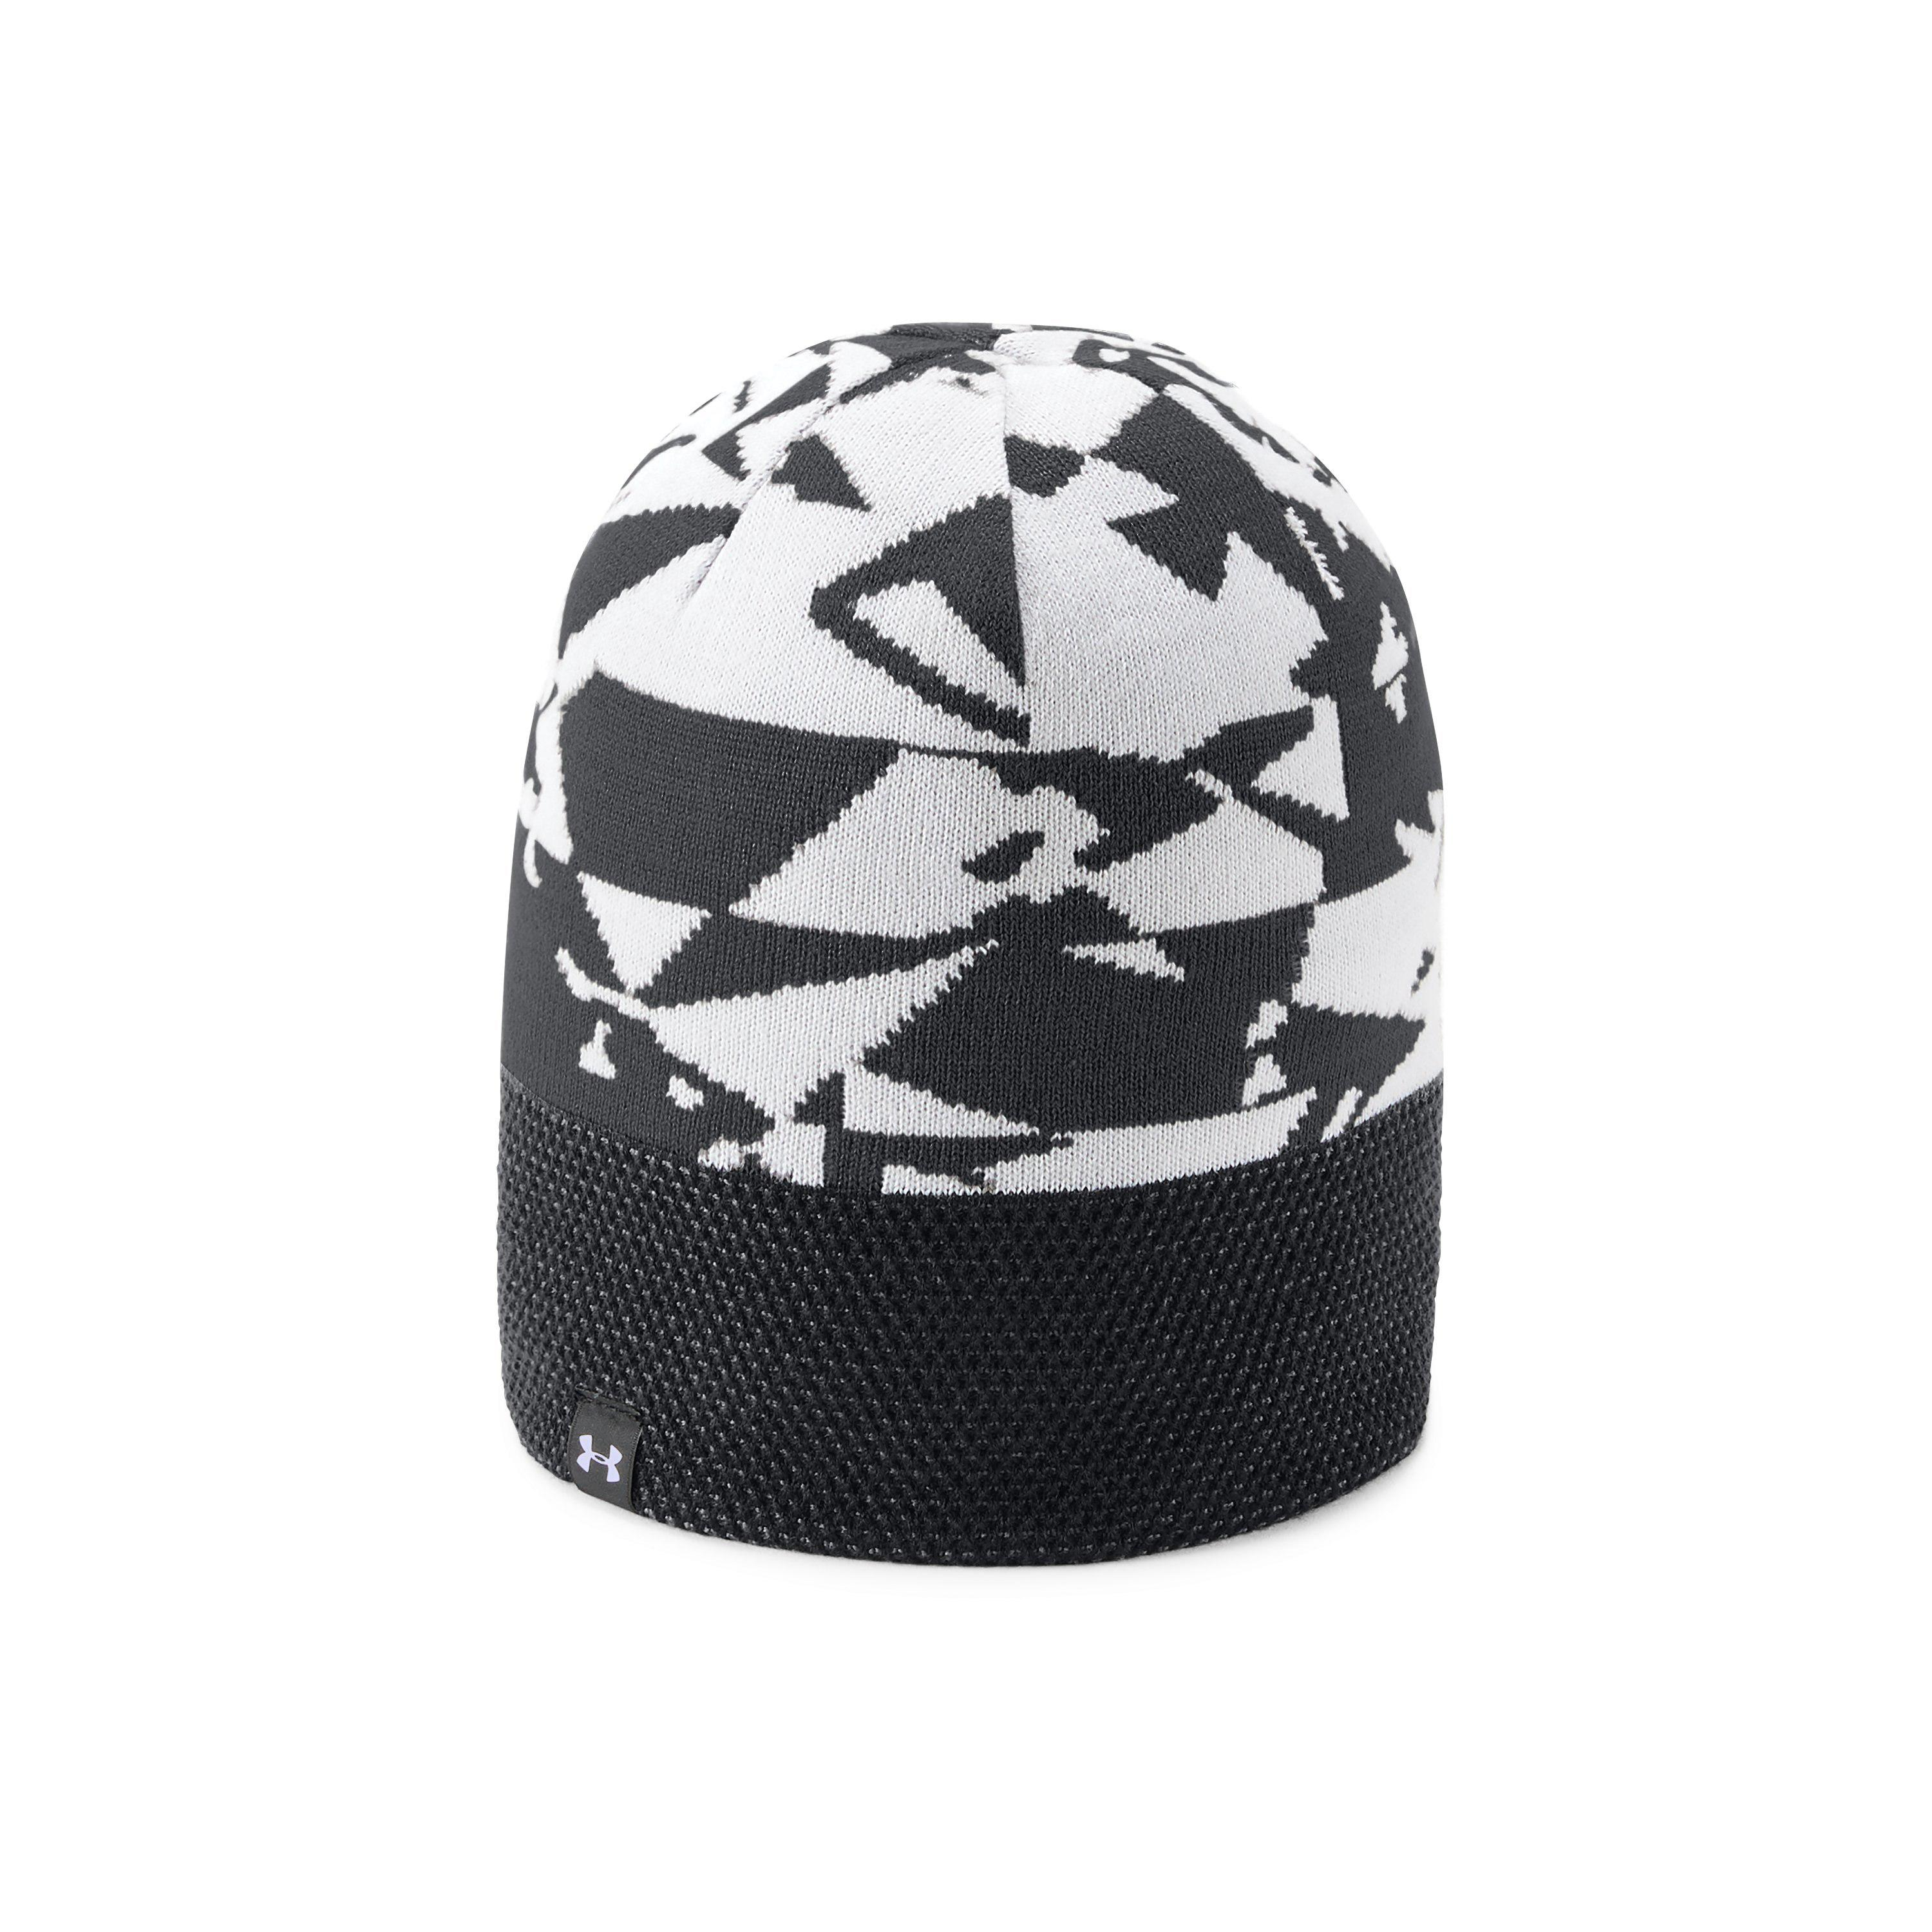 Lyst - Under Armour Boy s Ua Reversible Beanie in Black for Men bf7281a5aff9